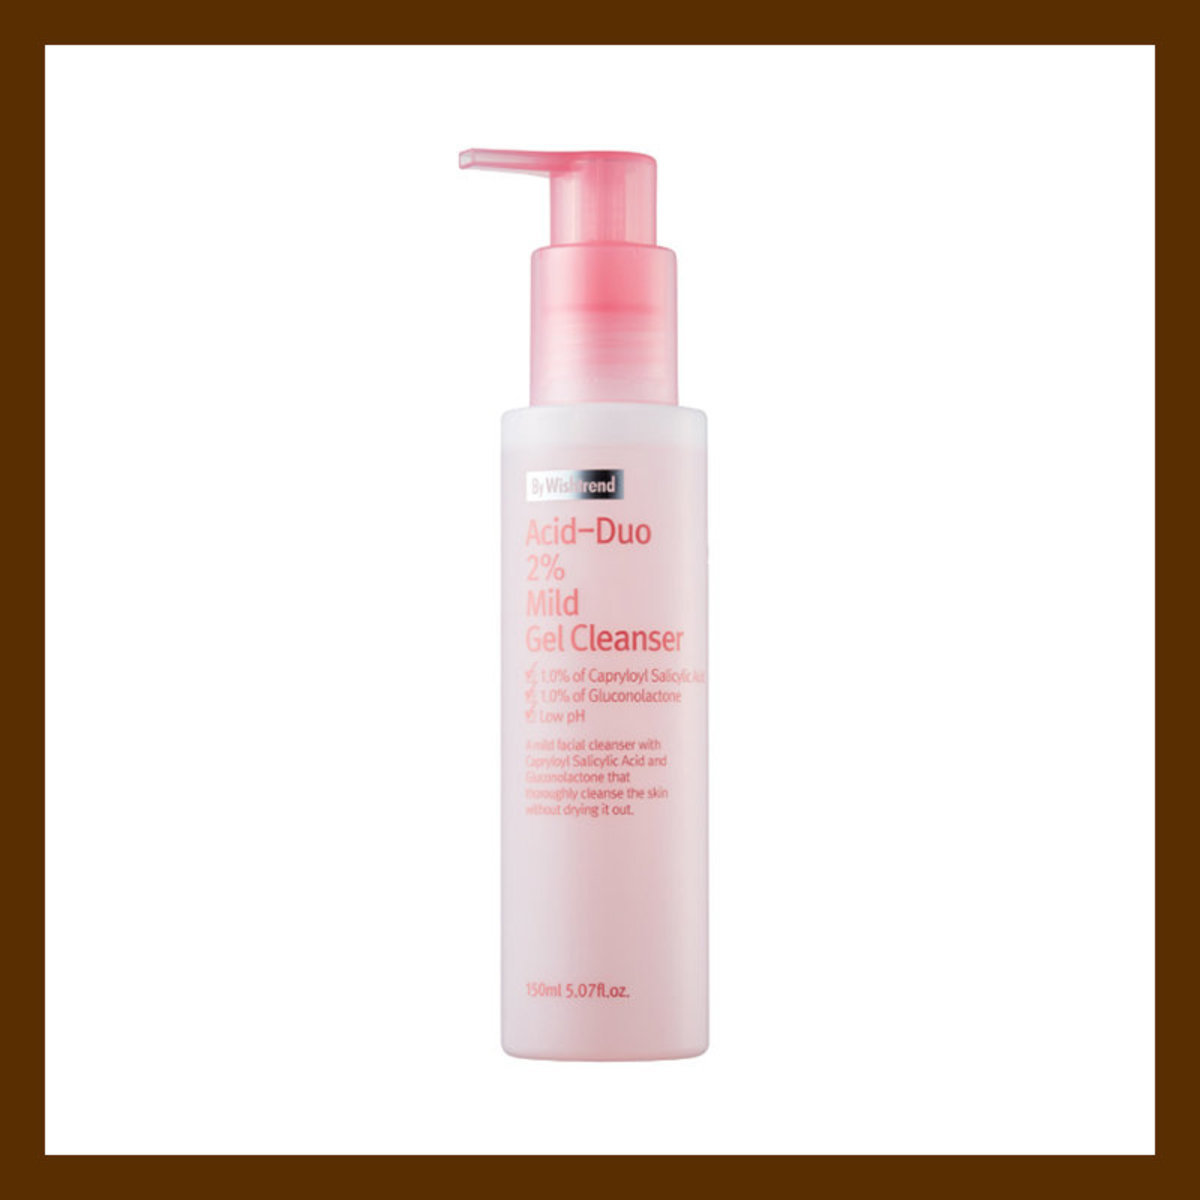 BY WISHTREND Acid-duo 2% Mild Gel Cleanser 2%弱果酸潔面液 150ml